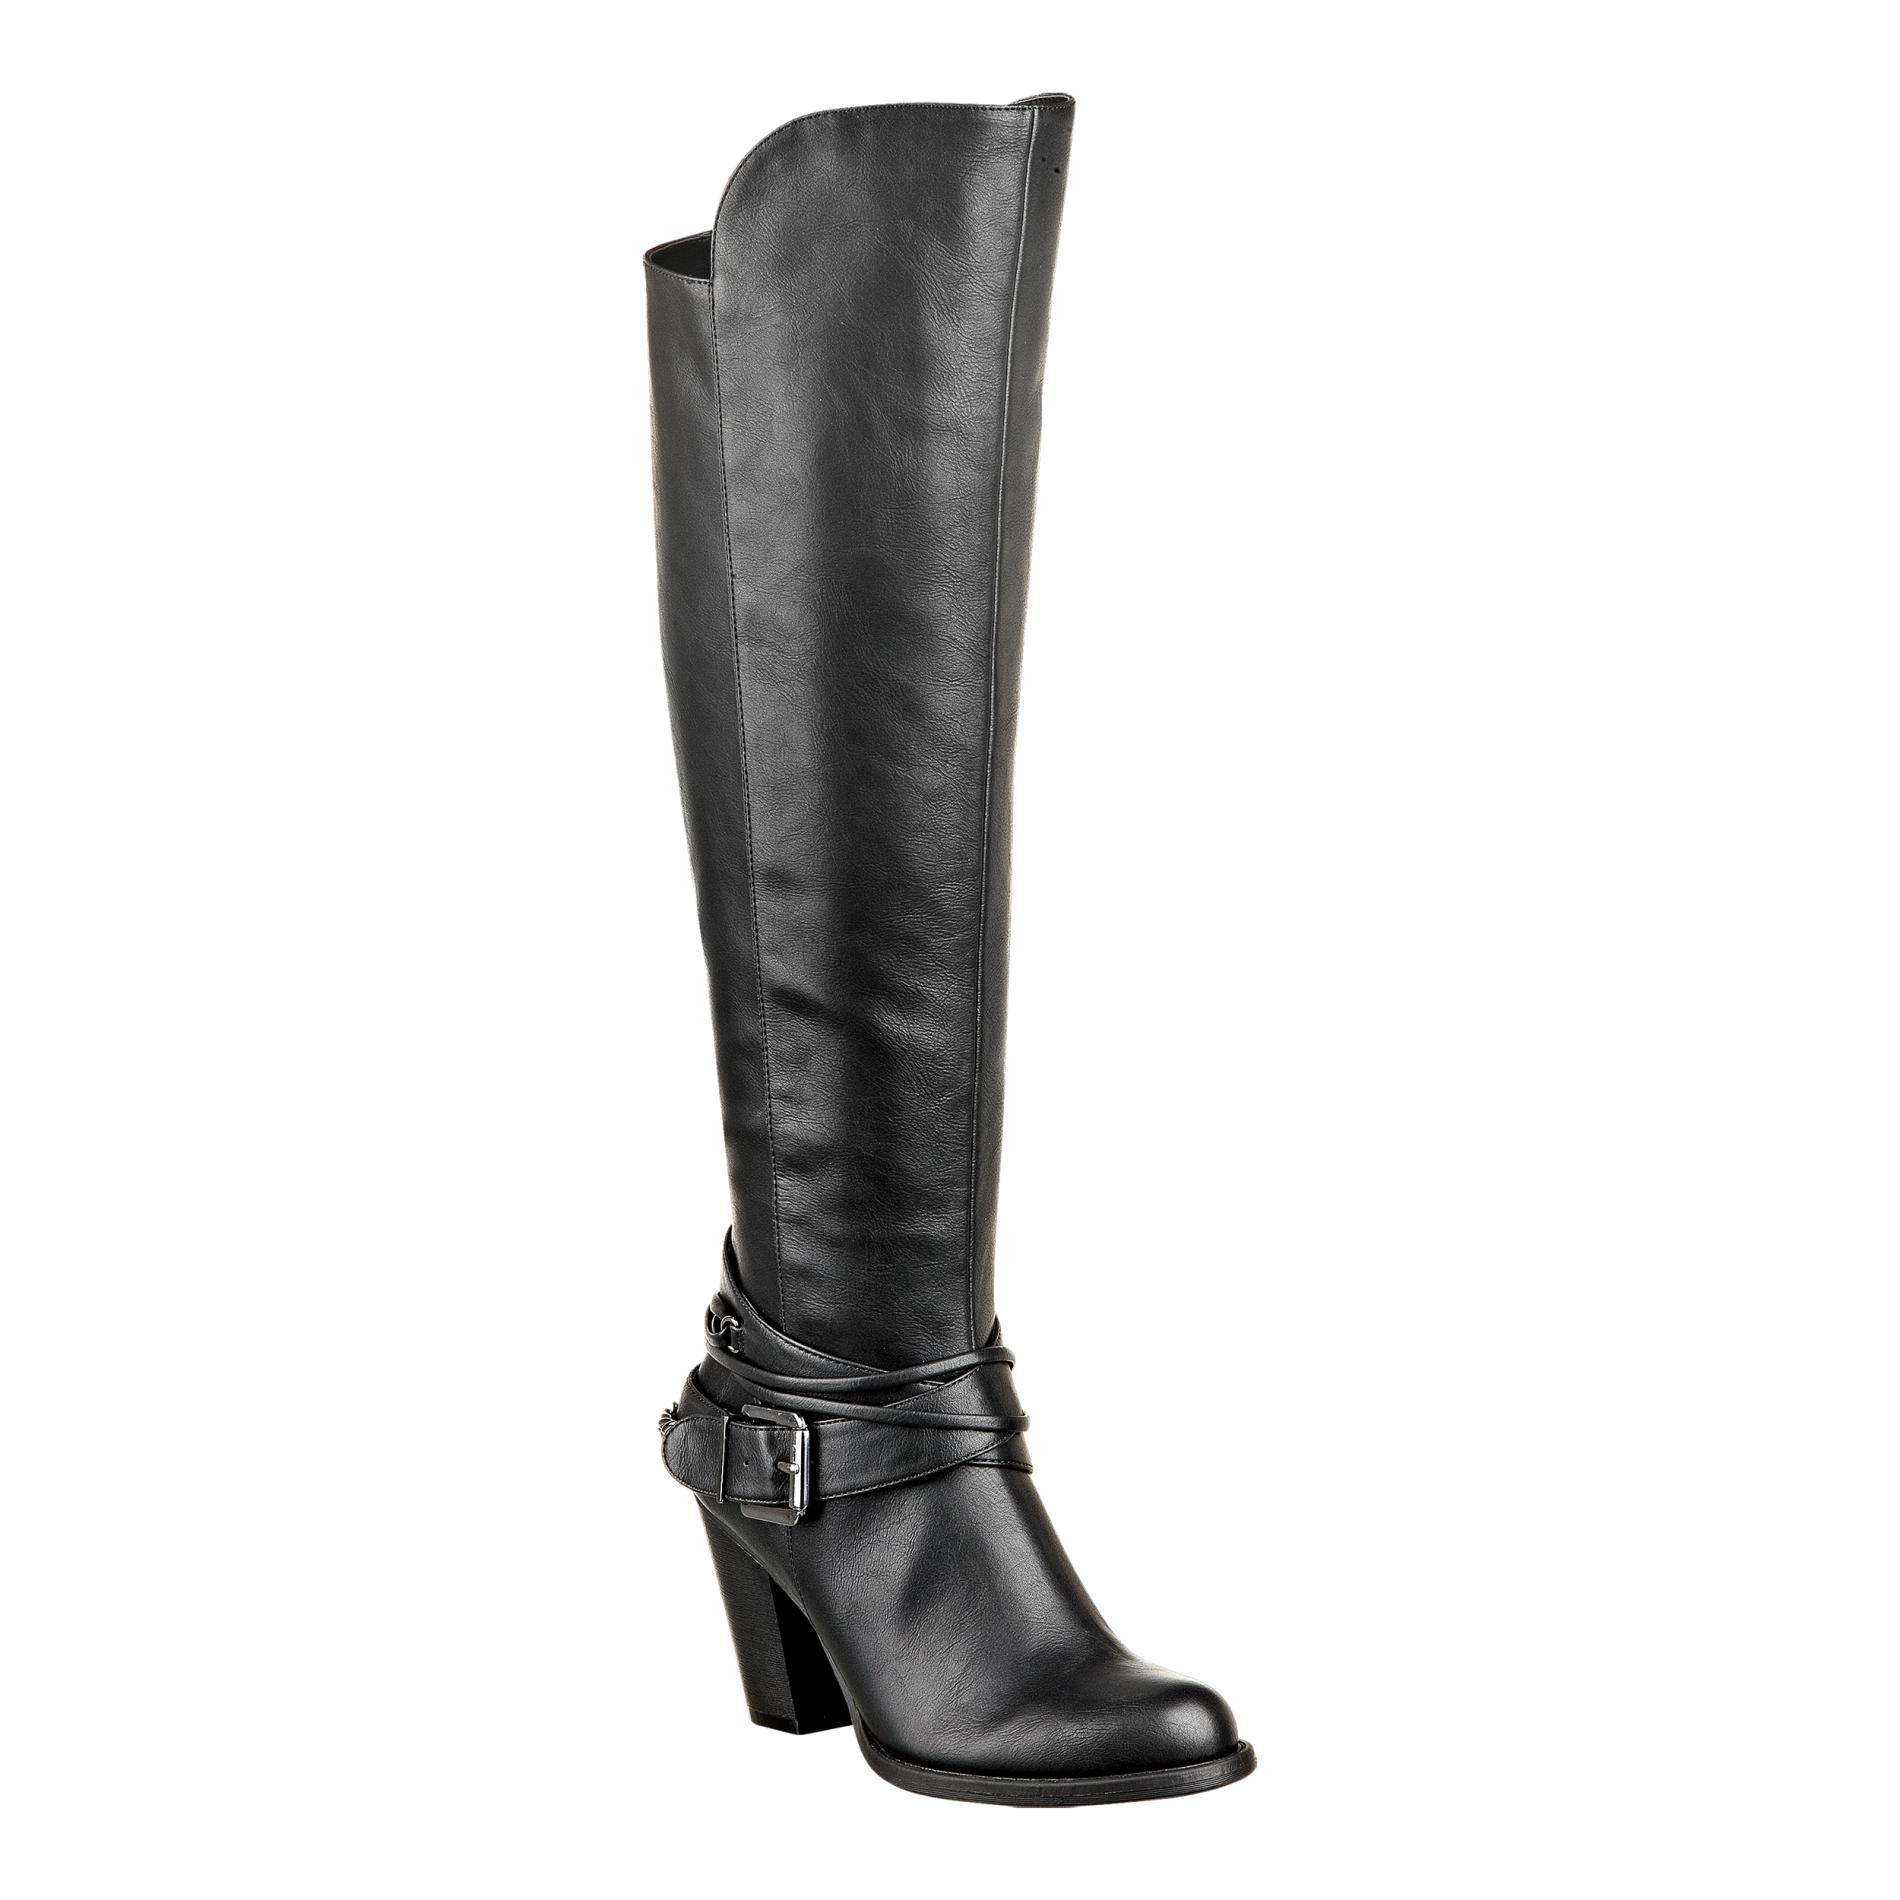 Pink & Pepper Women's Author Black Tall Boot PartNumber: 054VA79592012P MfgPartNumber: AUTHOR